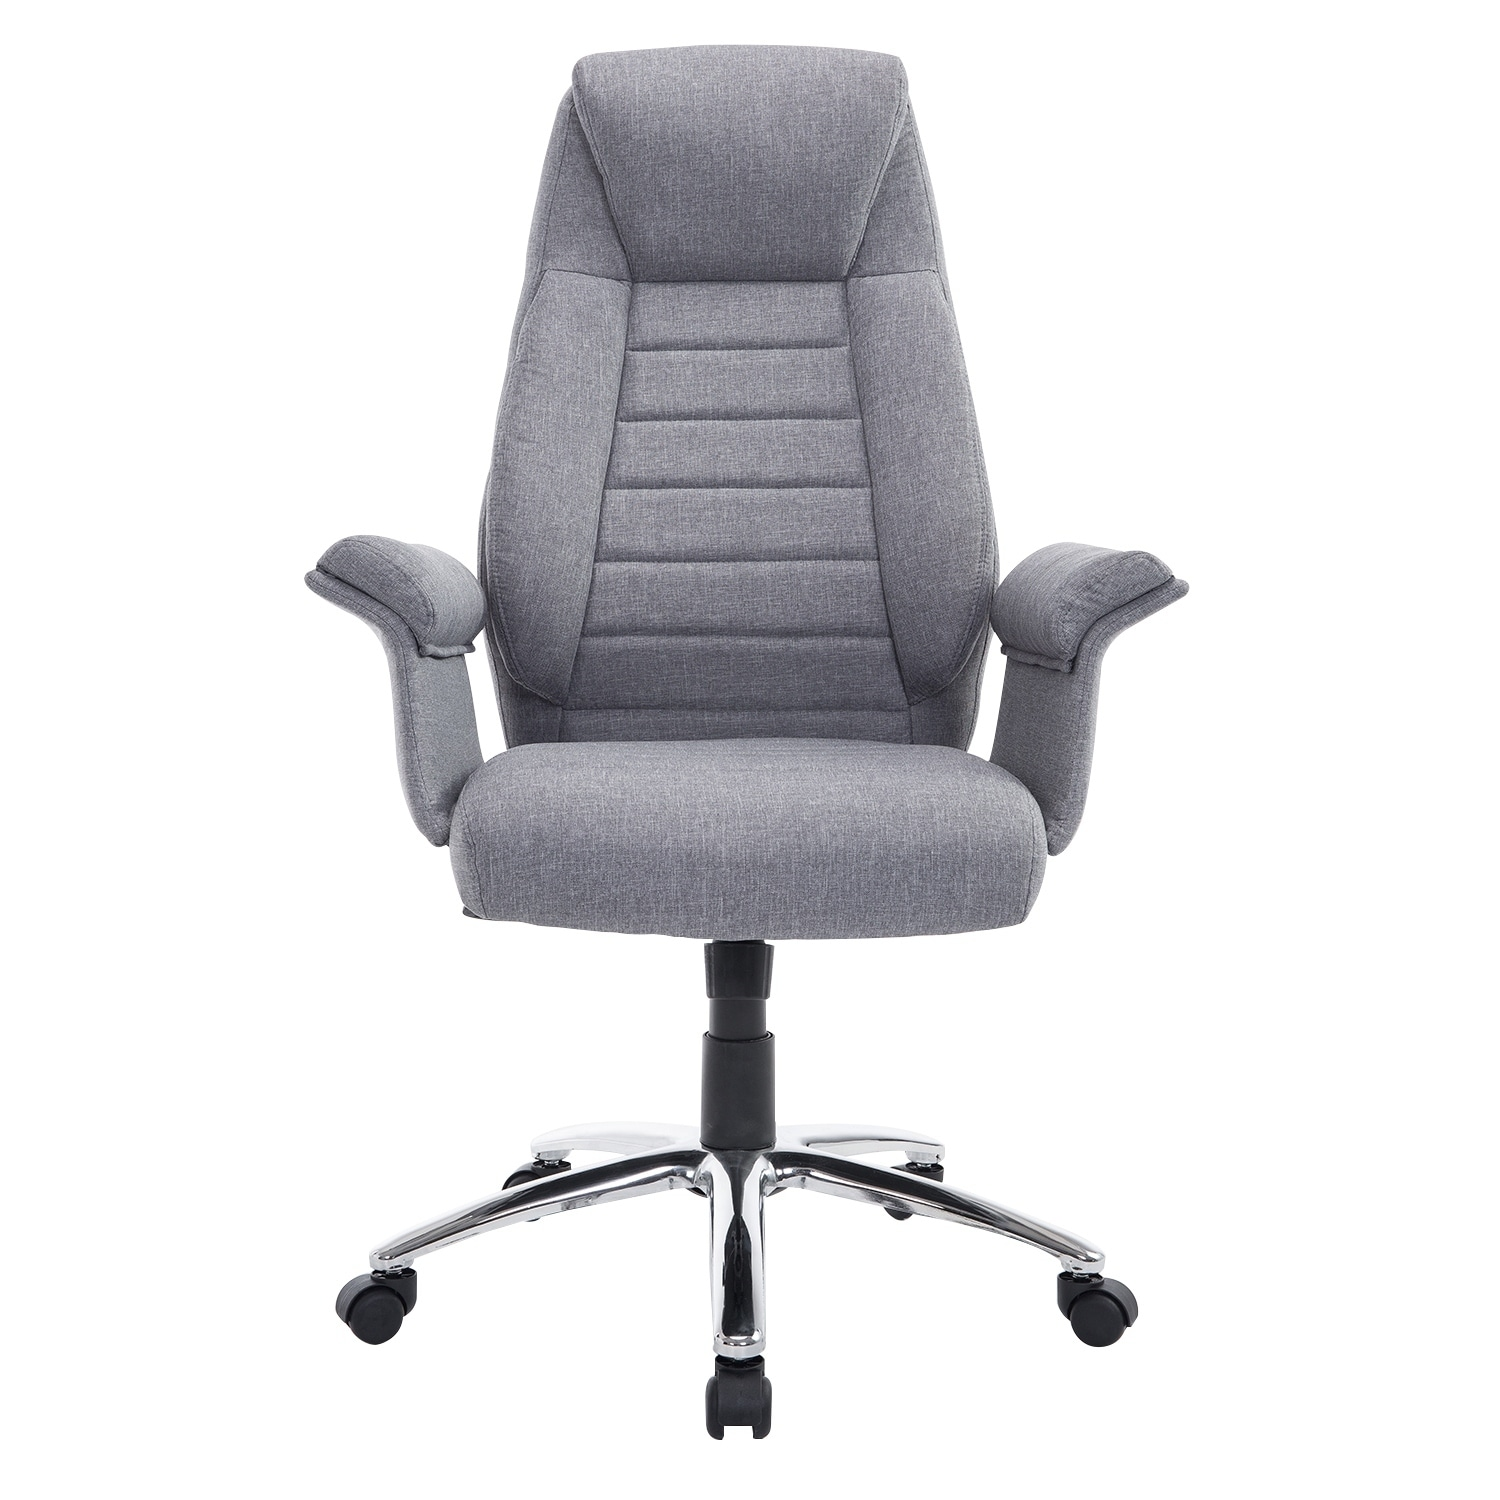 Exceptionnel Shop HomCom High Back Fabric Executive Office Chair   Light Gray   Free  Shipping Today   Overstock.com   18088228